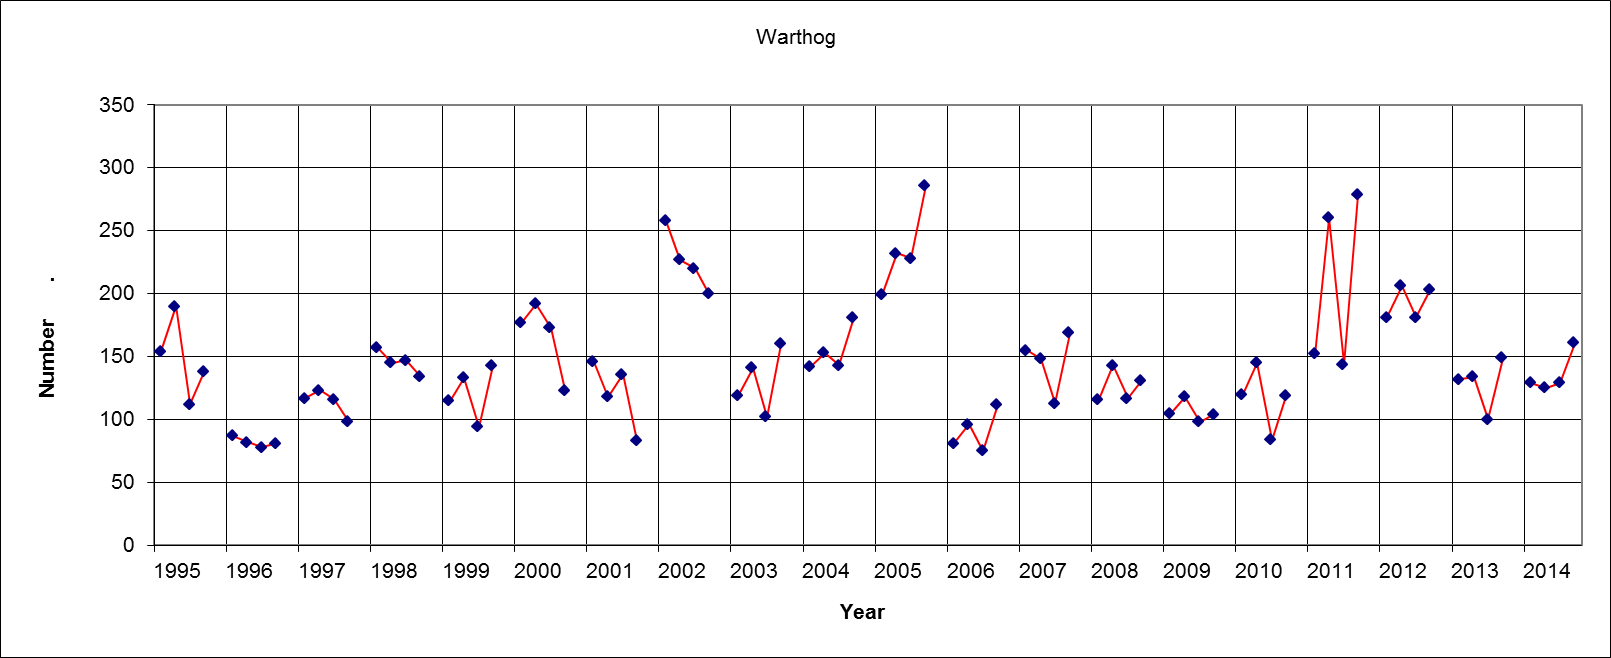 Warthog Results (Four figures each year = Sat am, Sat pm, Sun am, Sun pm